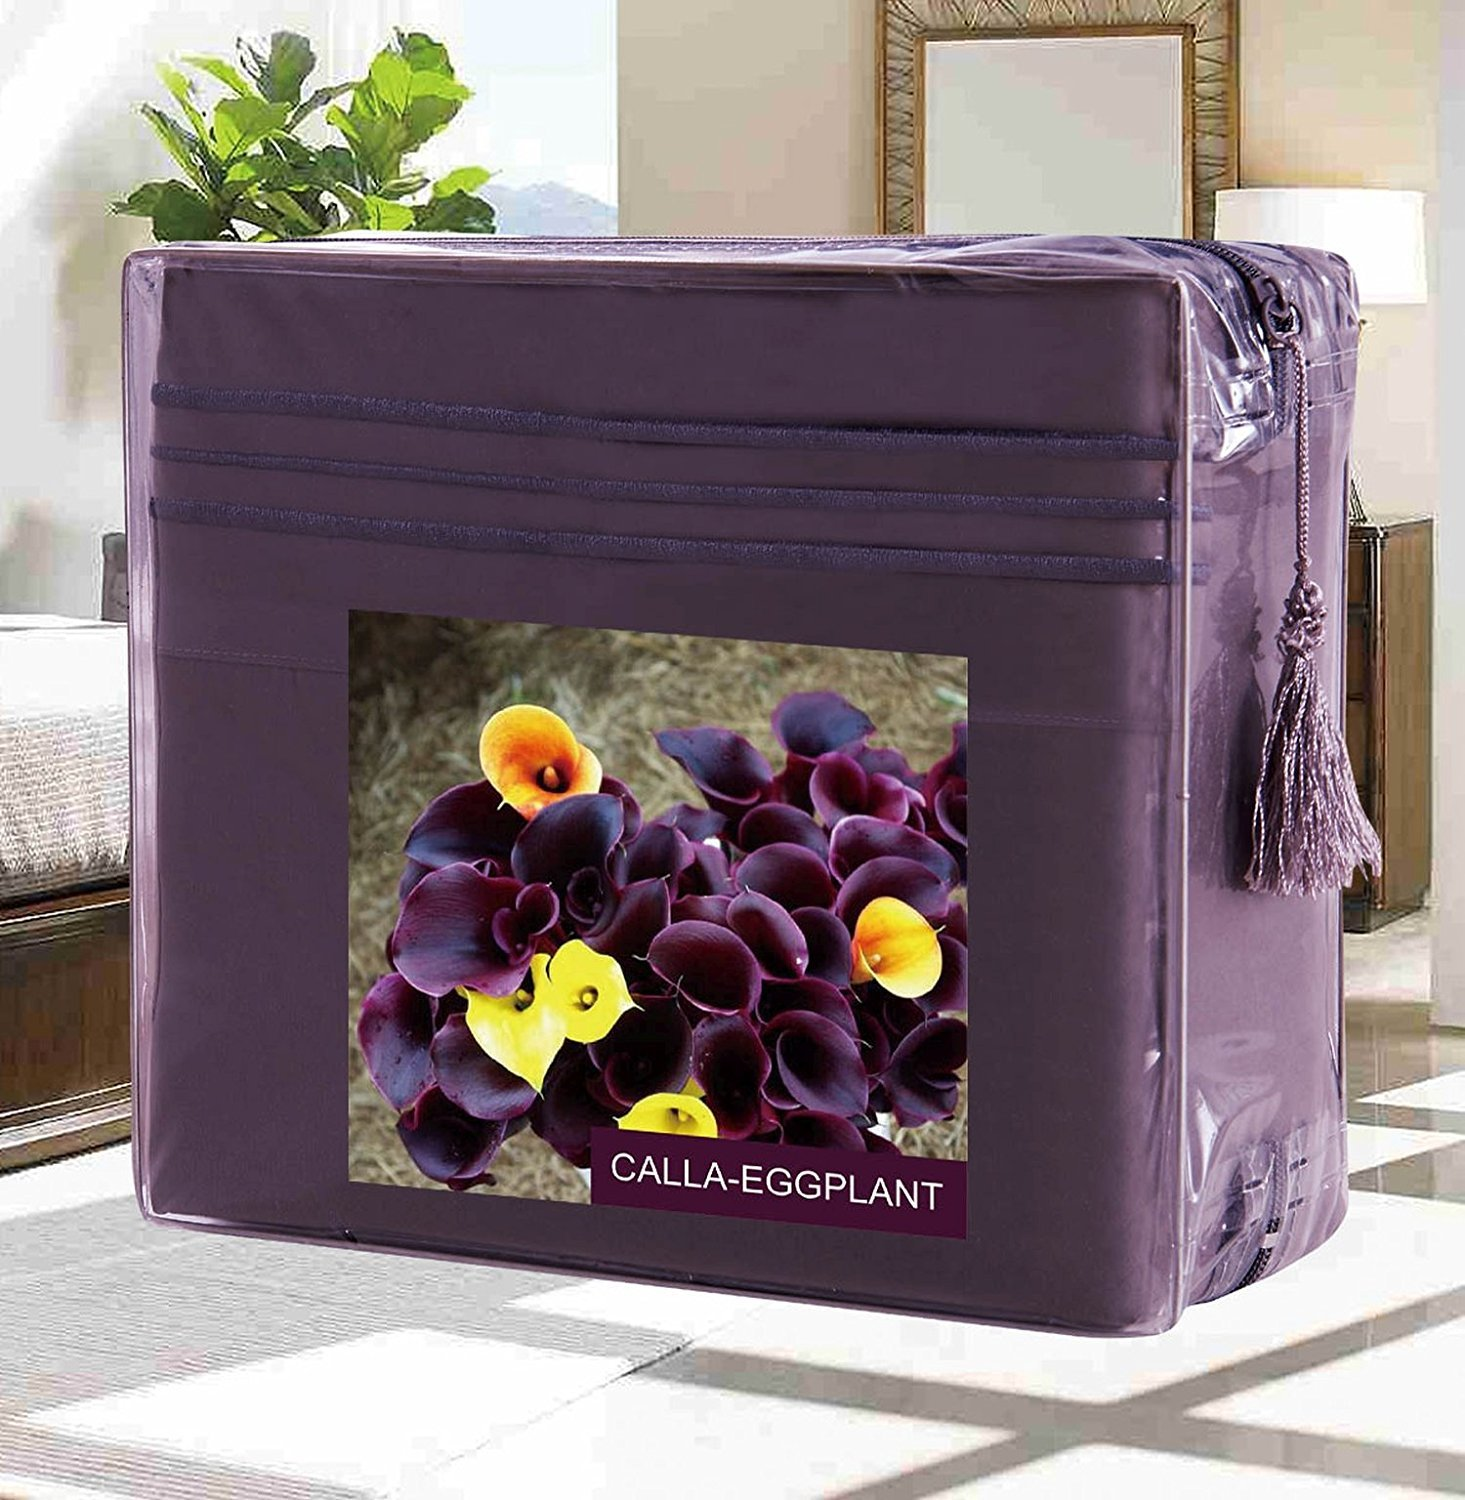 Egyptian Quality 2-Pieces Pillowcases- Flower Collection- Standard Size, Calla-Eggplant